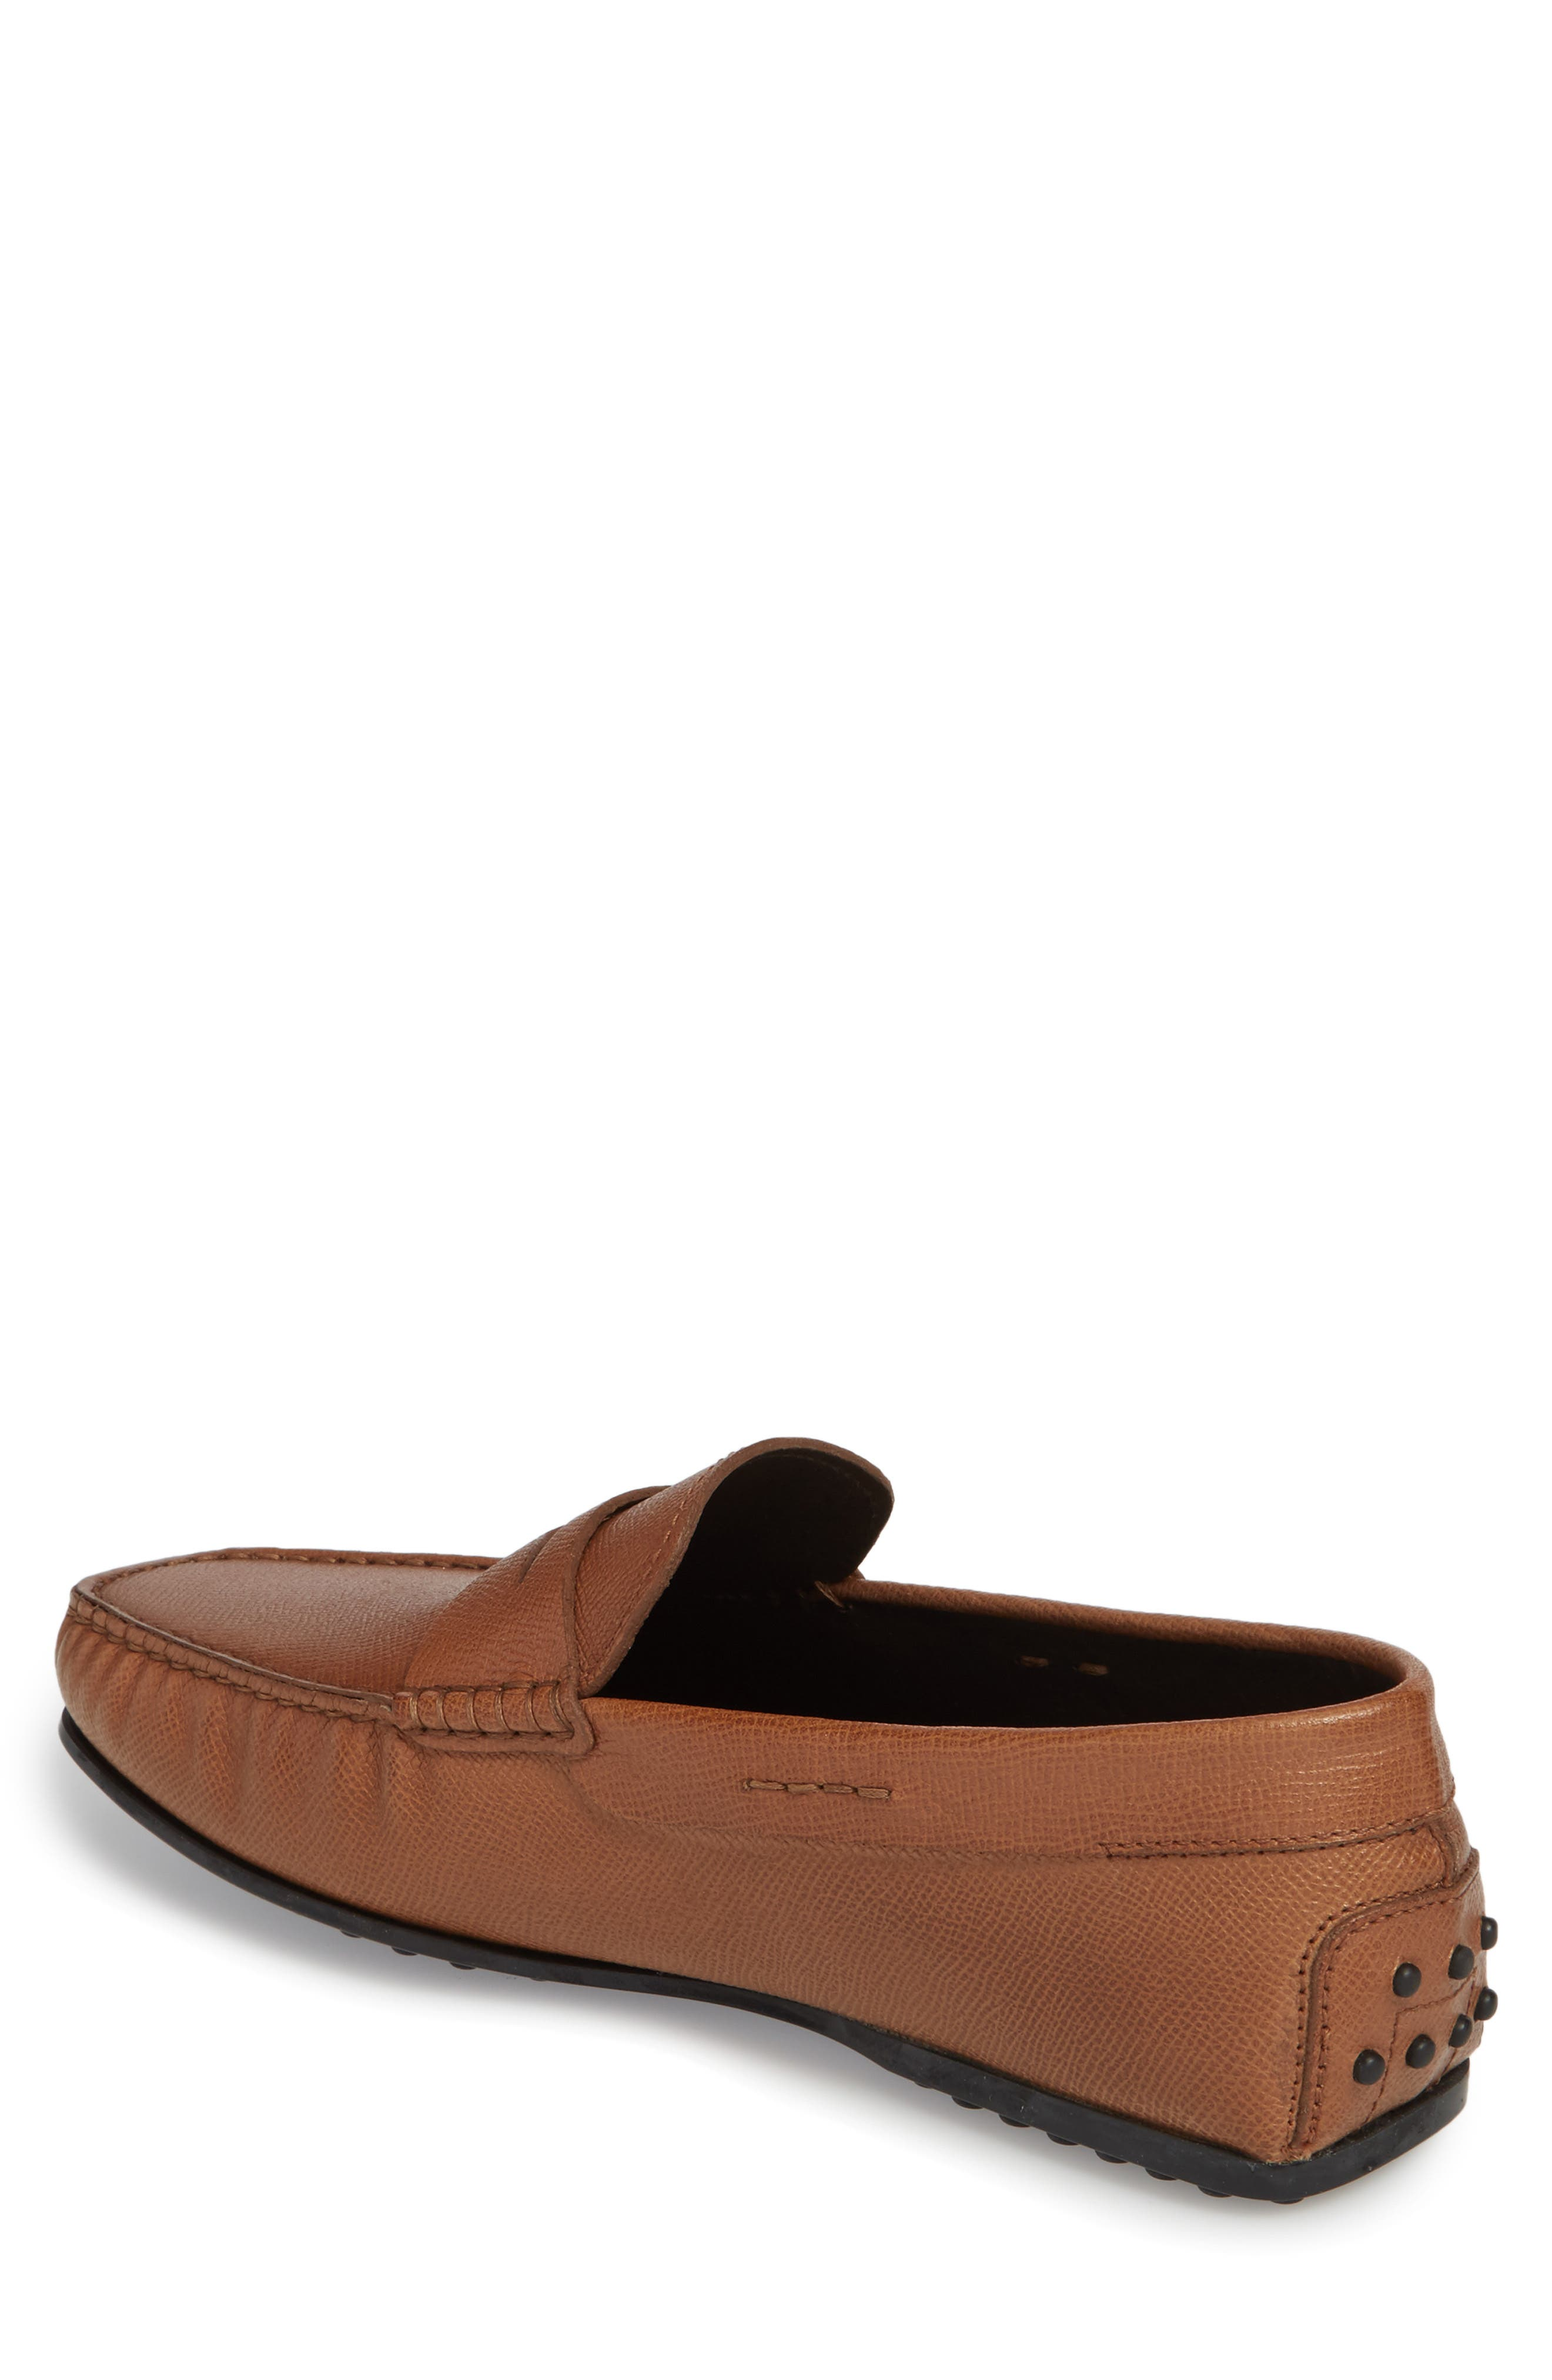 City Driving Shoe,                             Alternate thumbnail 2, color,                             TAN LEATHER